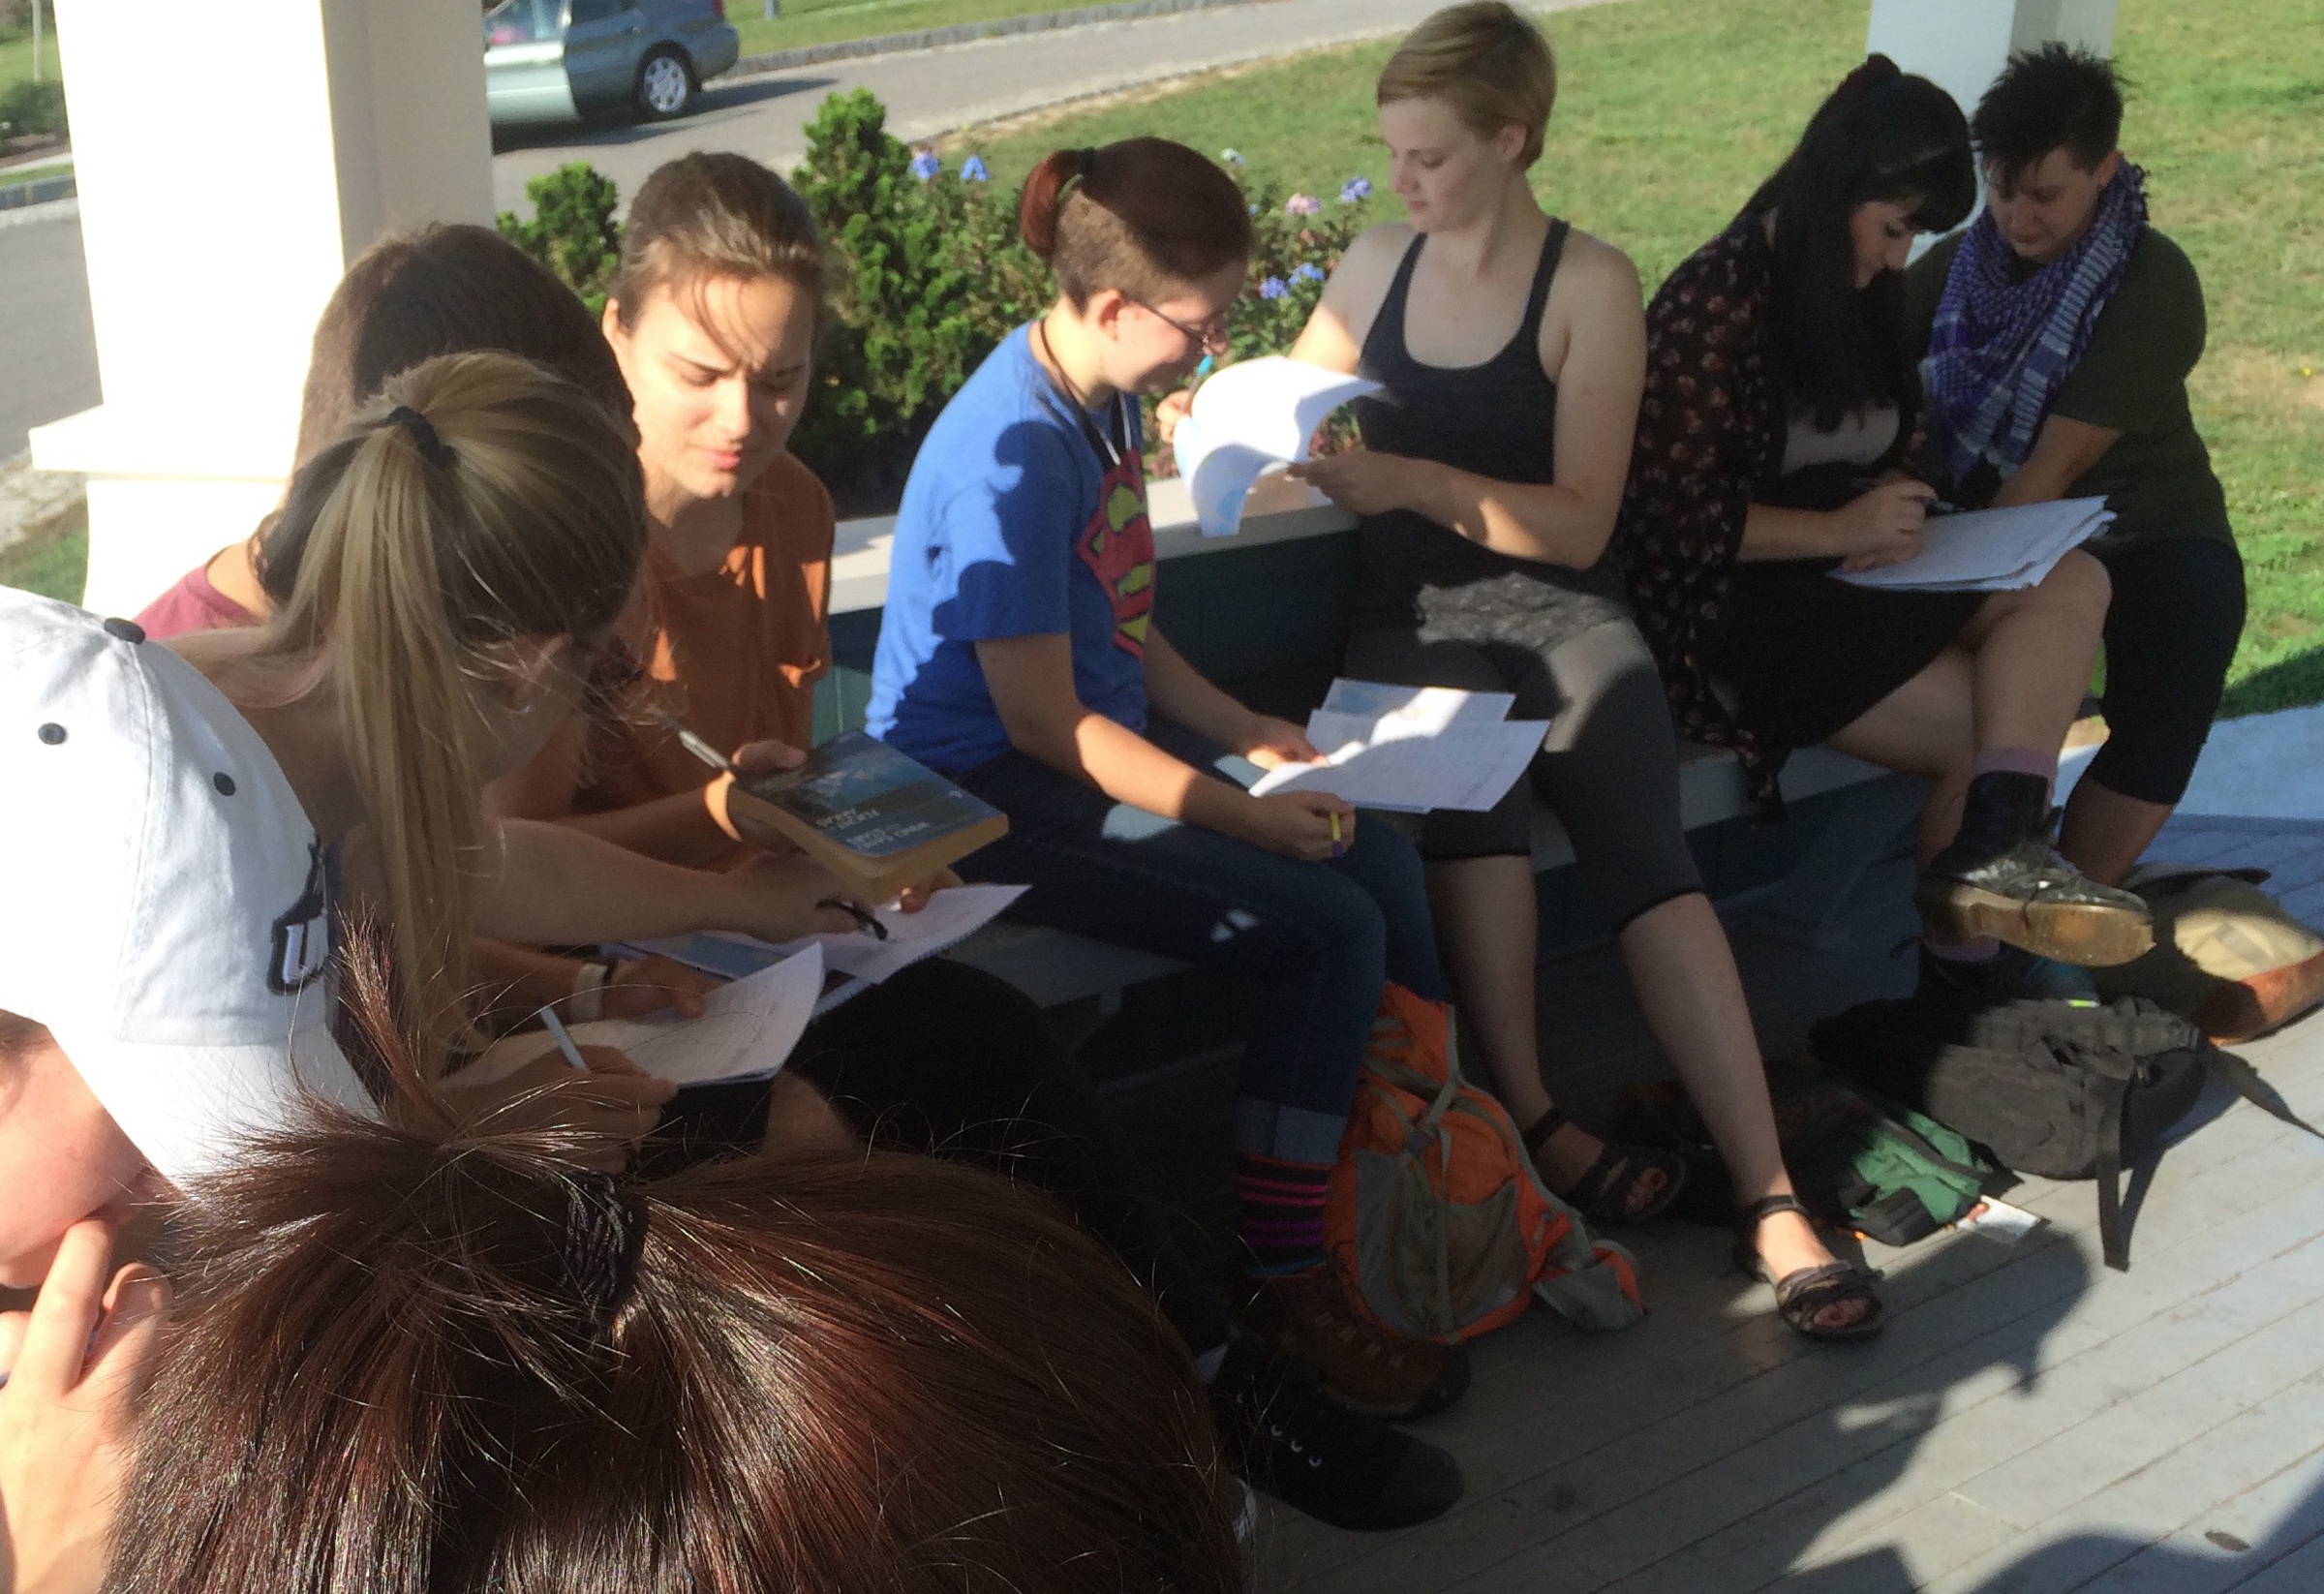 Students mapping their daily trajectories on the Eastern Prom, Portland ME